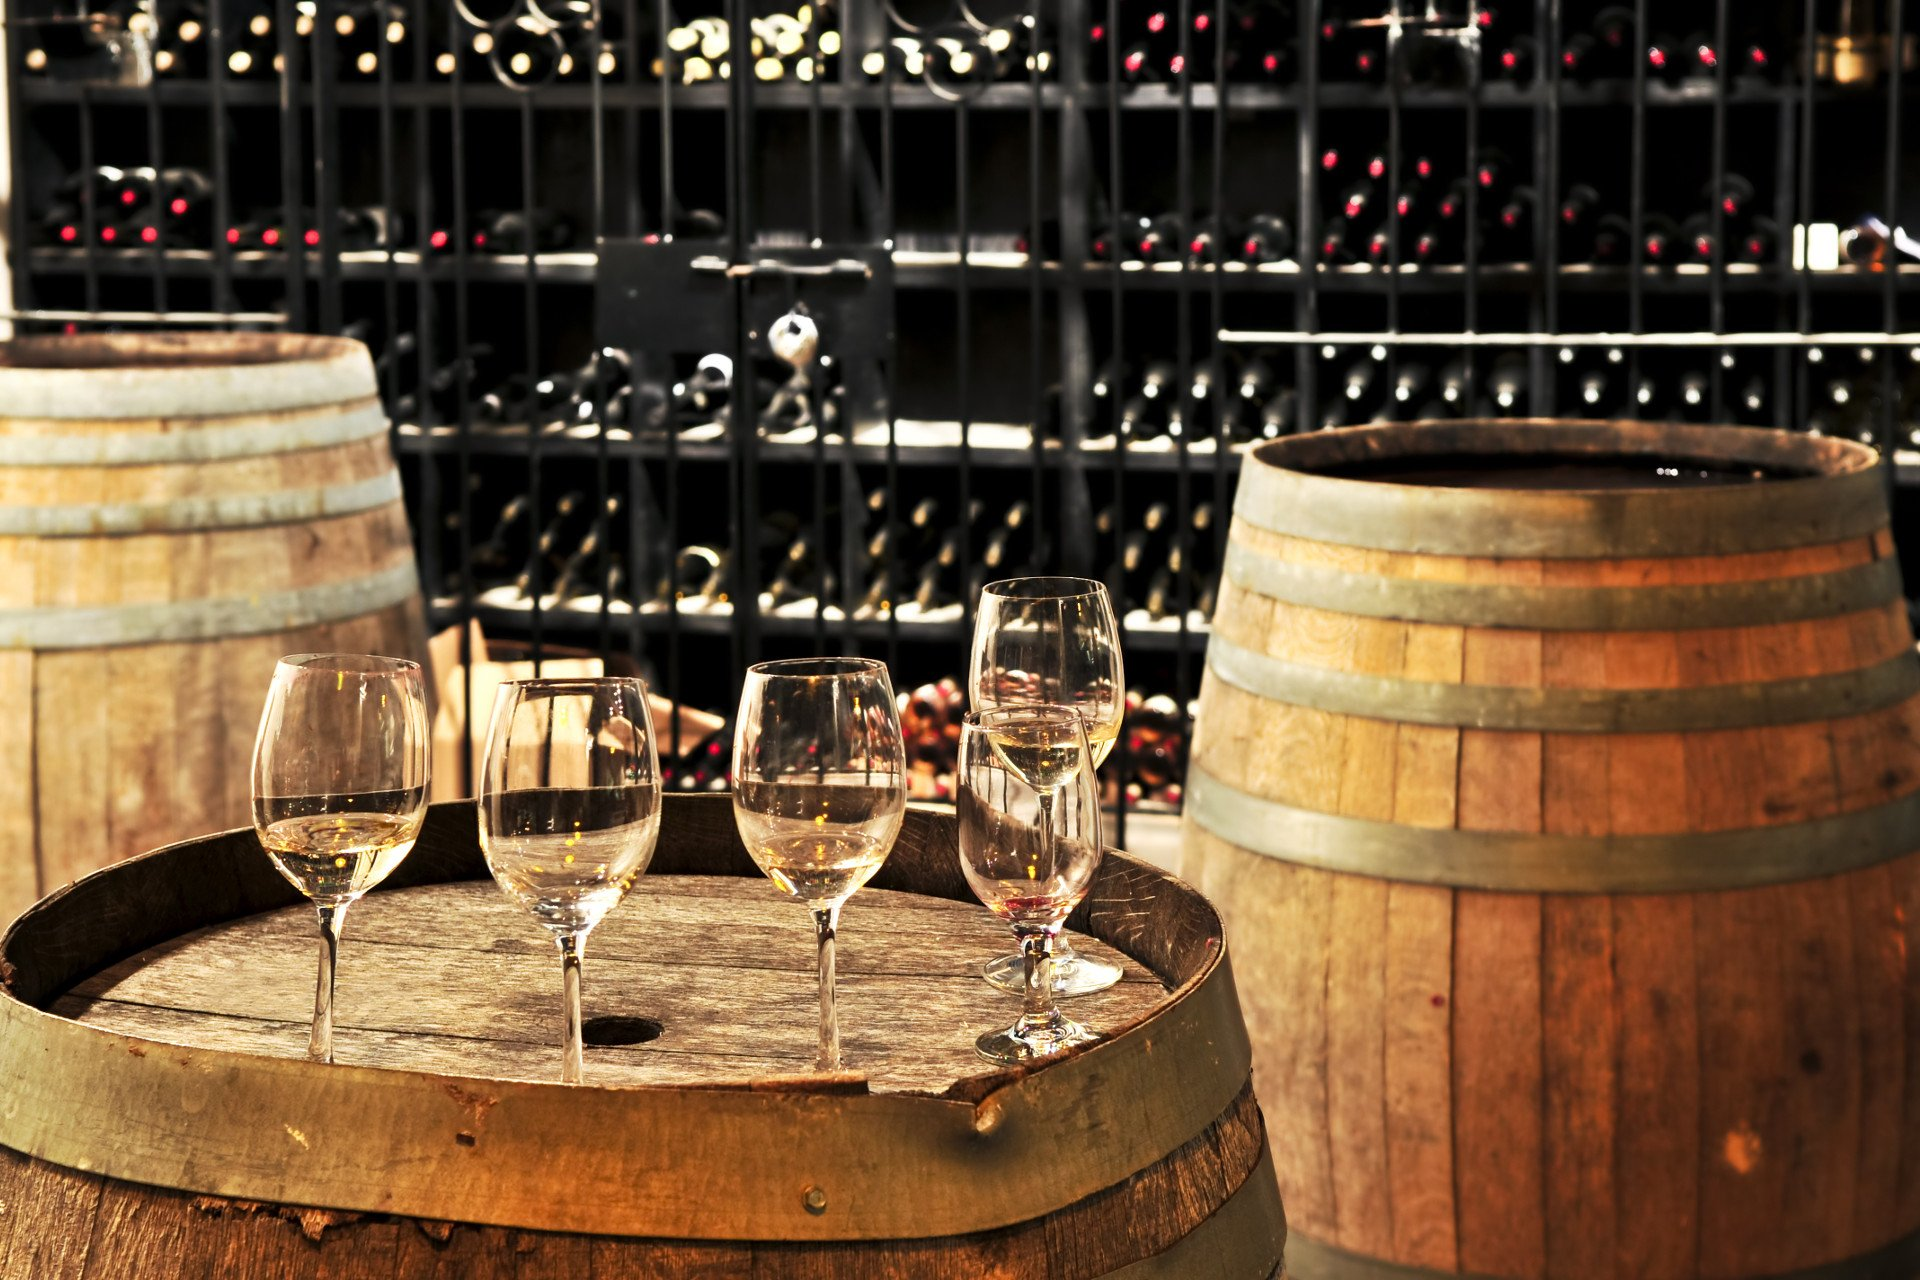 Glasses on a barrel during wine tasting